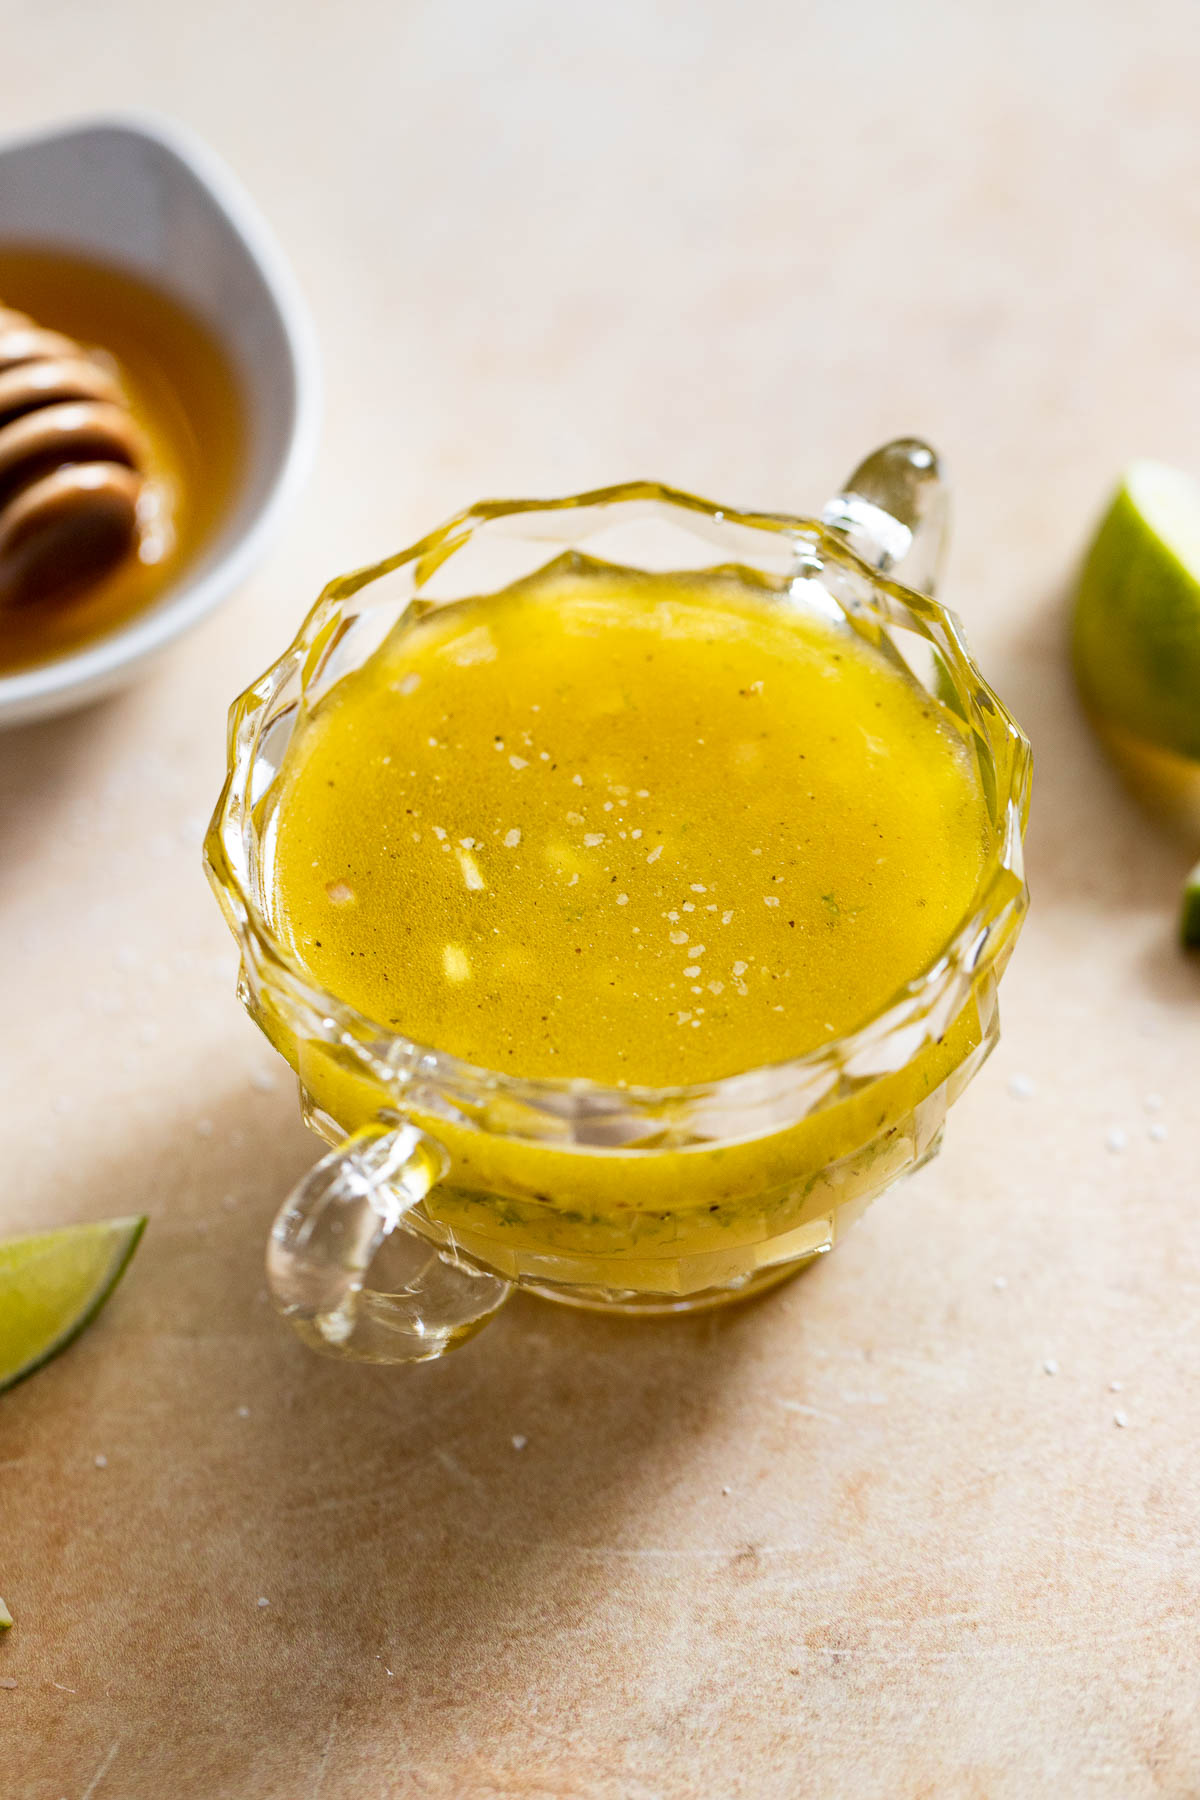 Dressing in glass jar next to limes and honey.